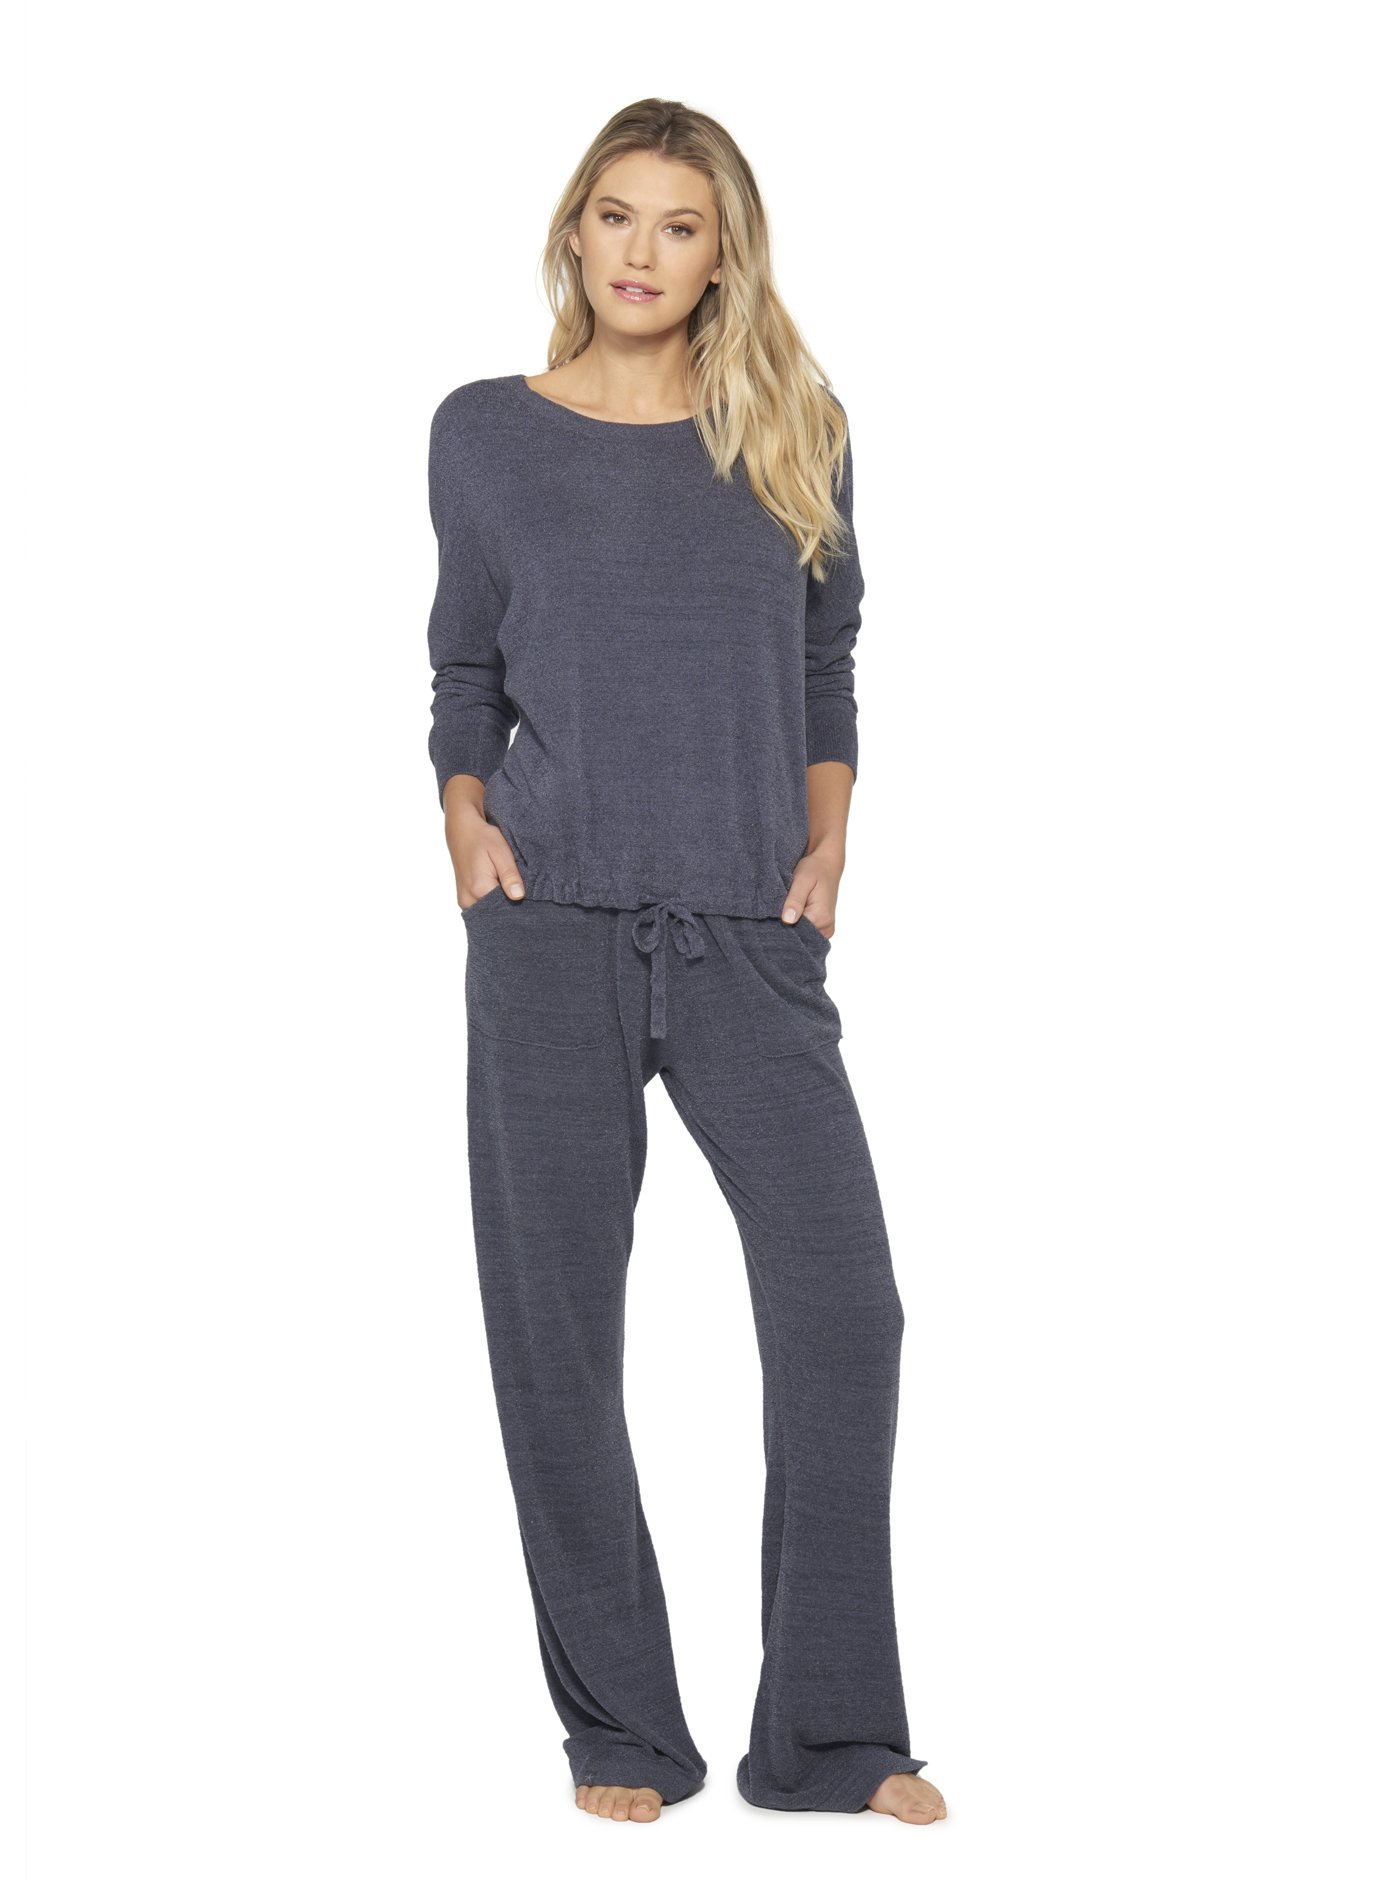 Barefoot Dreams Cozychic Ultra Lite Slouchy Pullover for Women, Ultra Soft Long Sleeve, Crew Neck, Pacific Blue Pullover